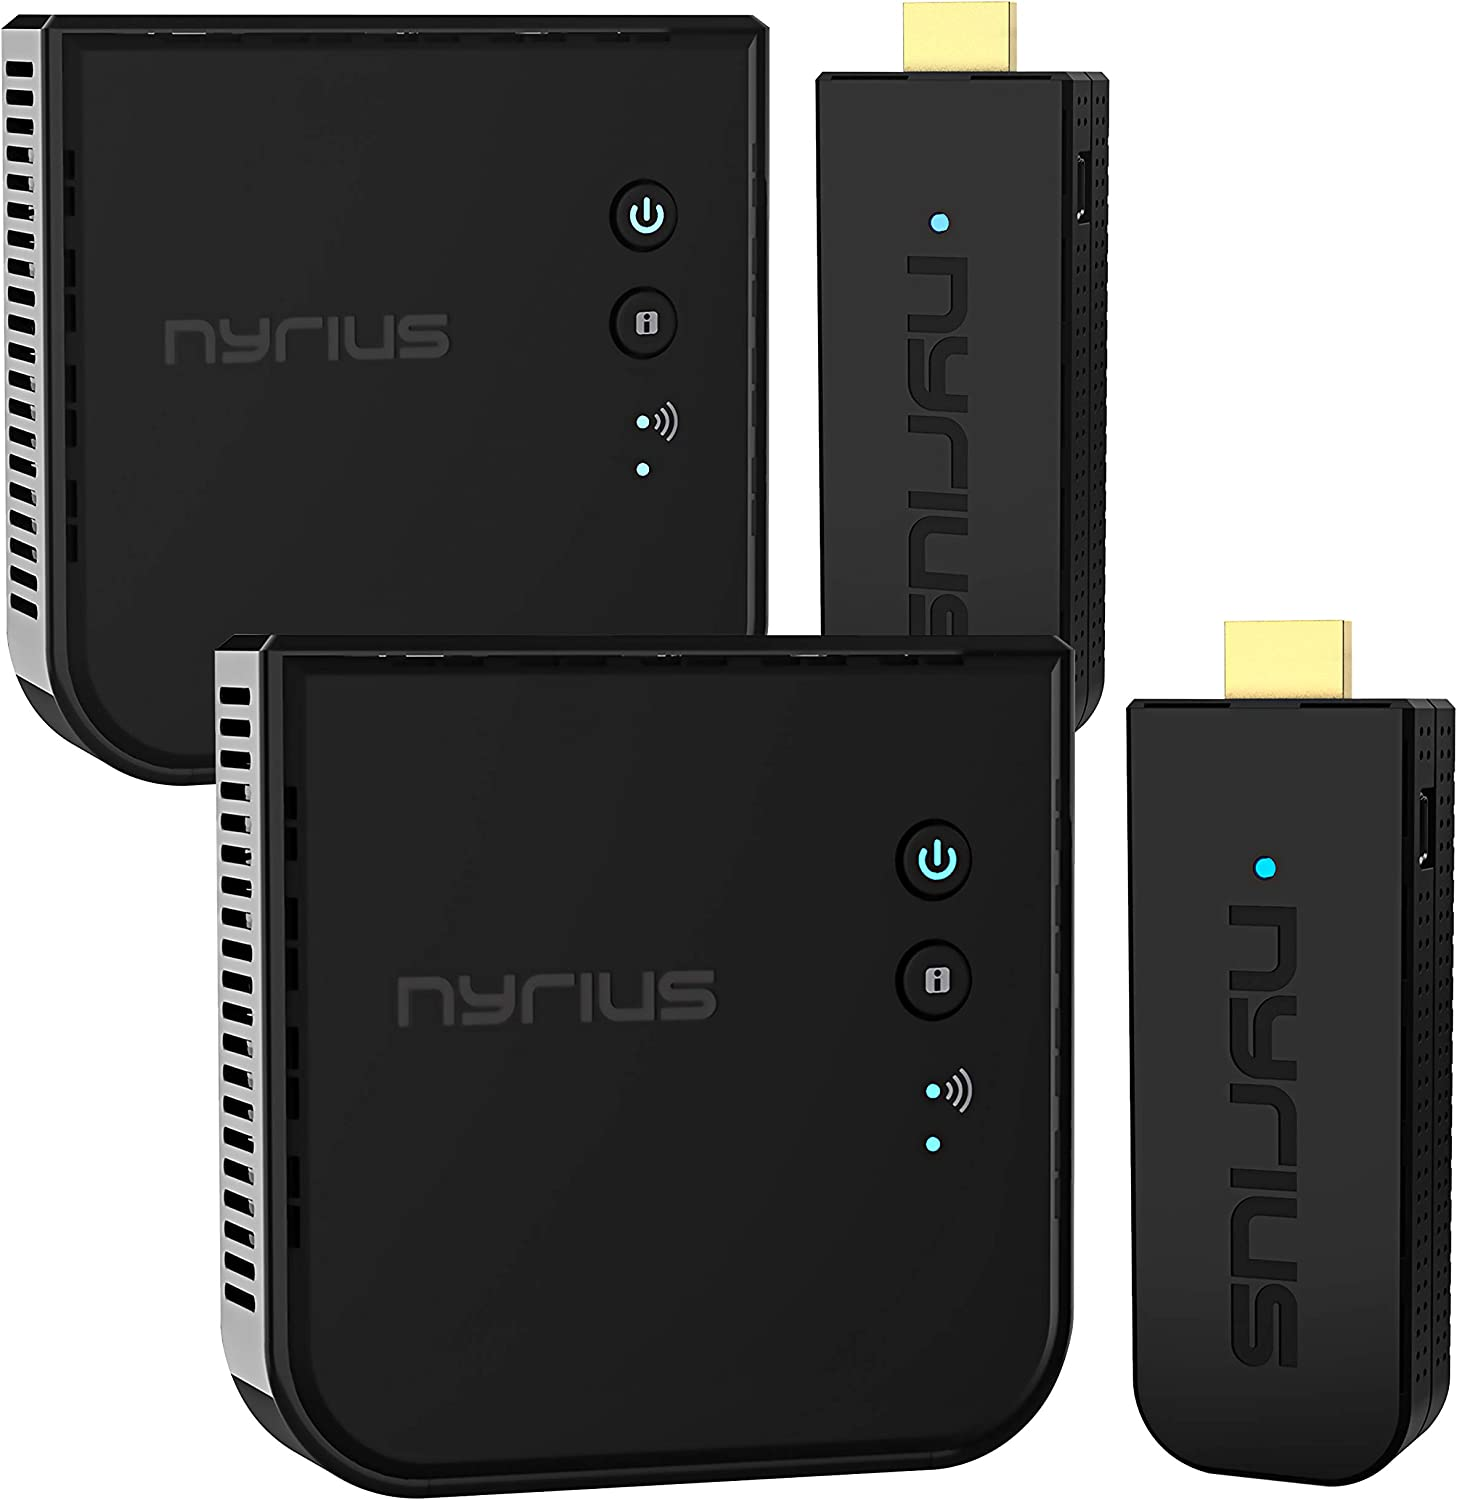 Nyrius Aries Pro+ Wireless HDMI Video Transmitter & Receiver to Stream 1080p Video up to 165ft from Laptop, PC, Cable Box, Game Console, DSLR Camera to a TV, Projector - 2 Pack